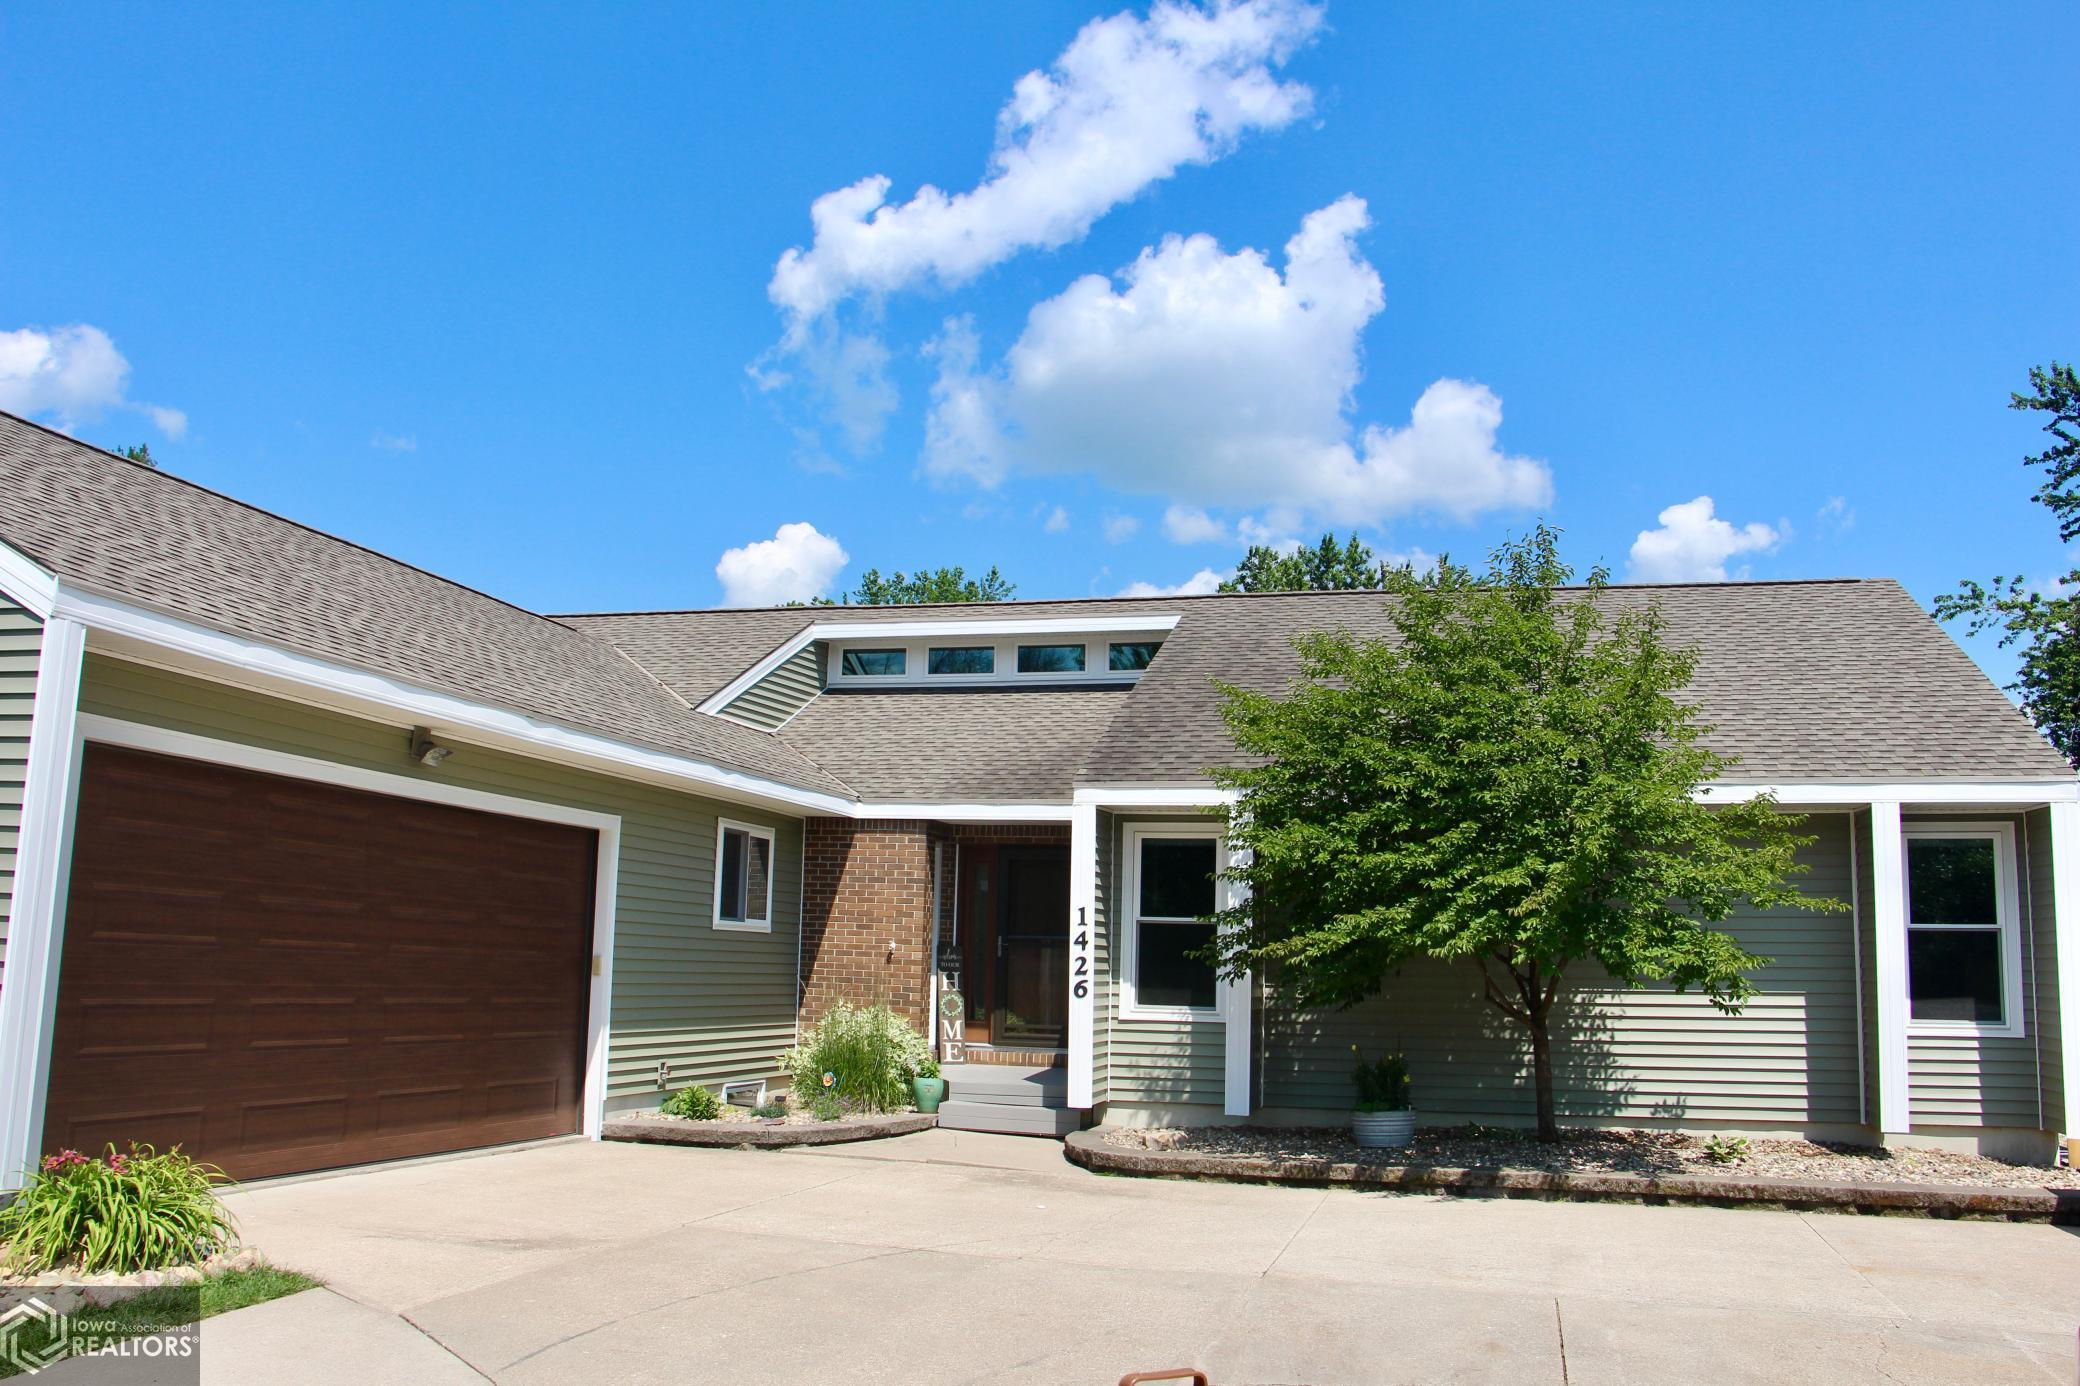 1426 Reed, Grinnell, Iowa 50112-1347, 4 Bedrooms Bedrooms, ,2 BathroomsBathrooms,Single Family,For Sale,Reed,6018880